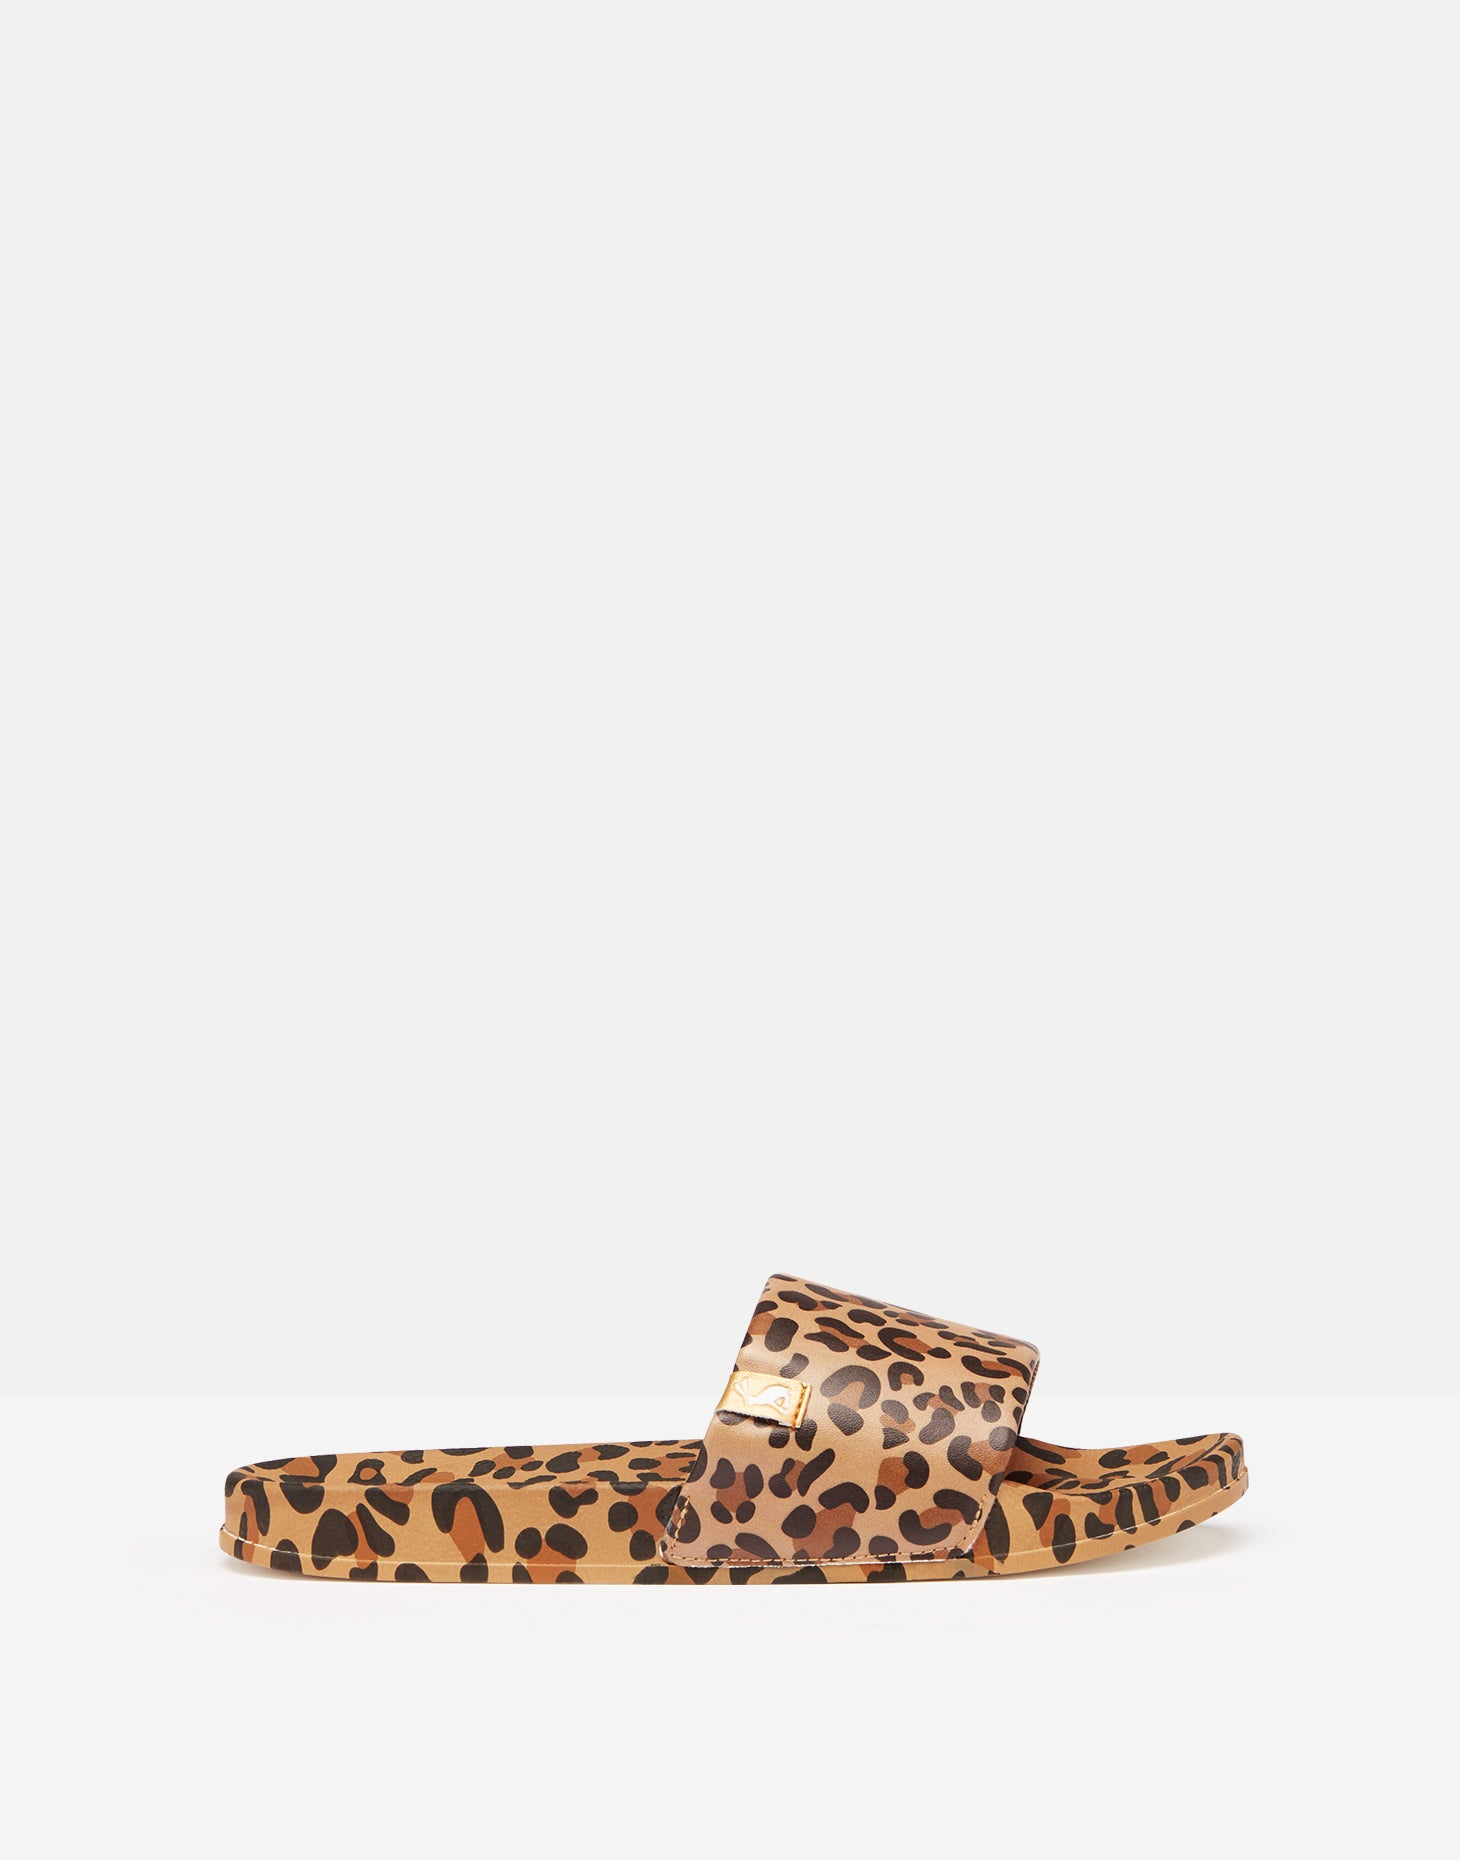 Leopard Poolside Slides - Dalton Boutique